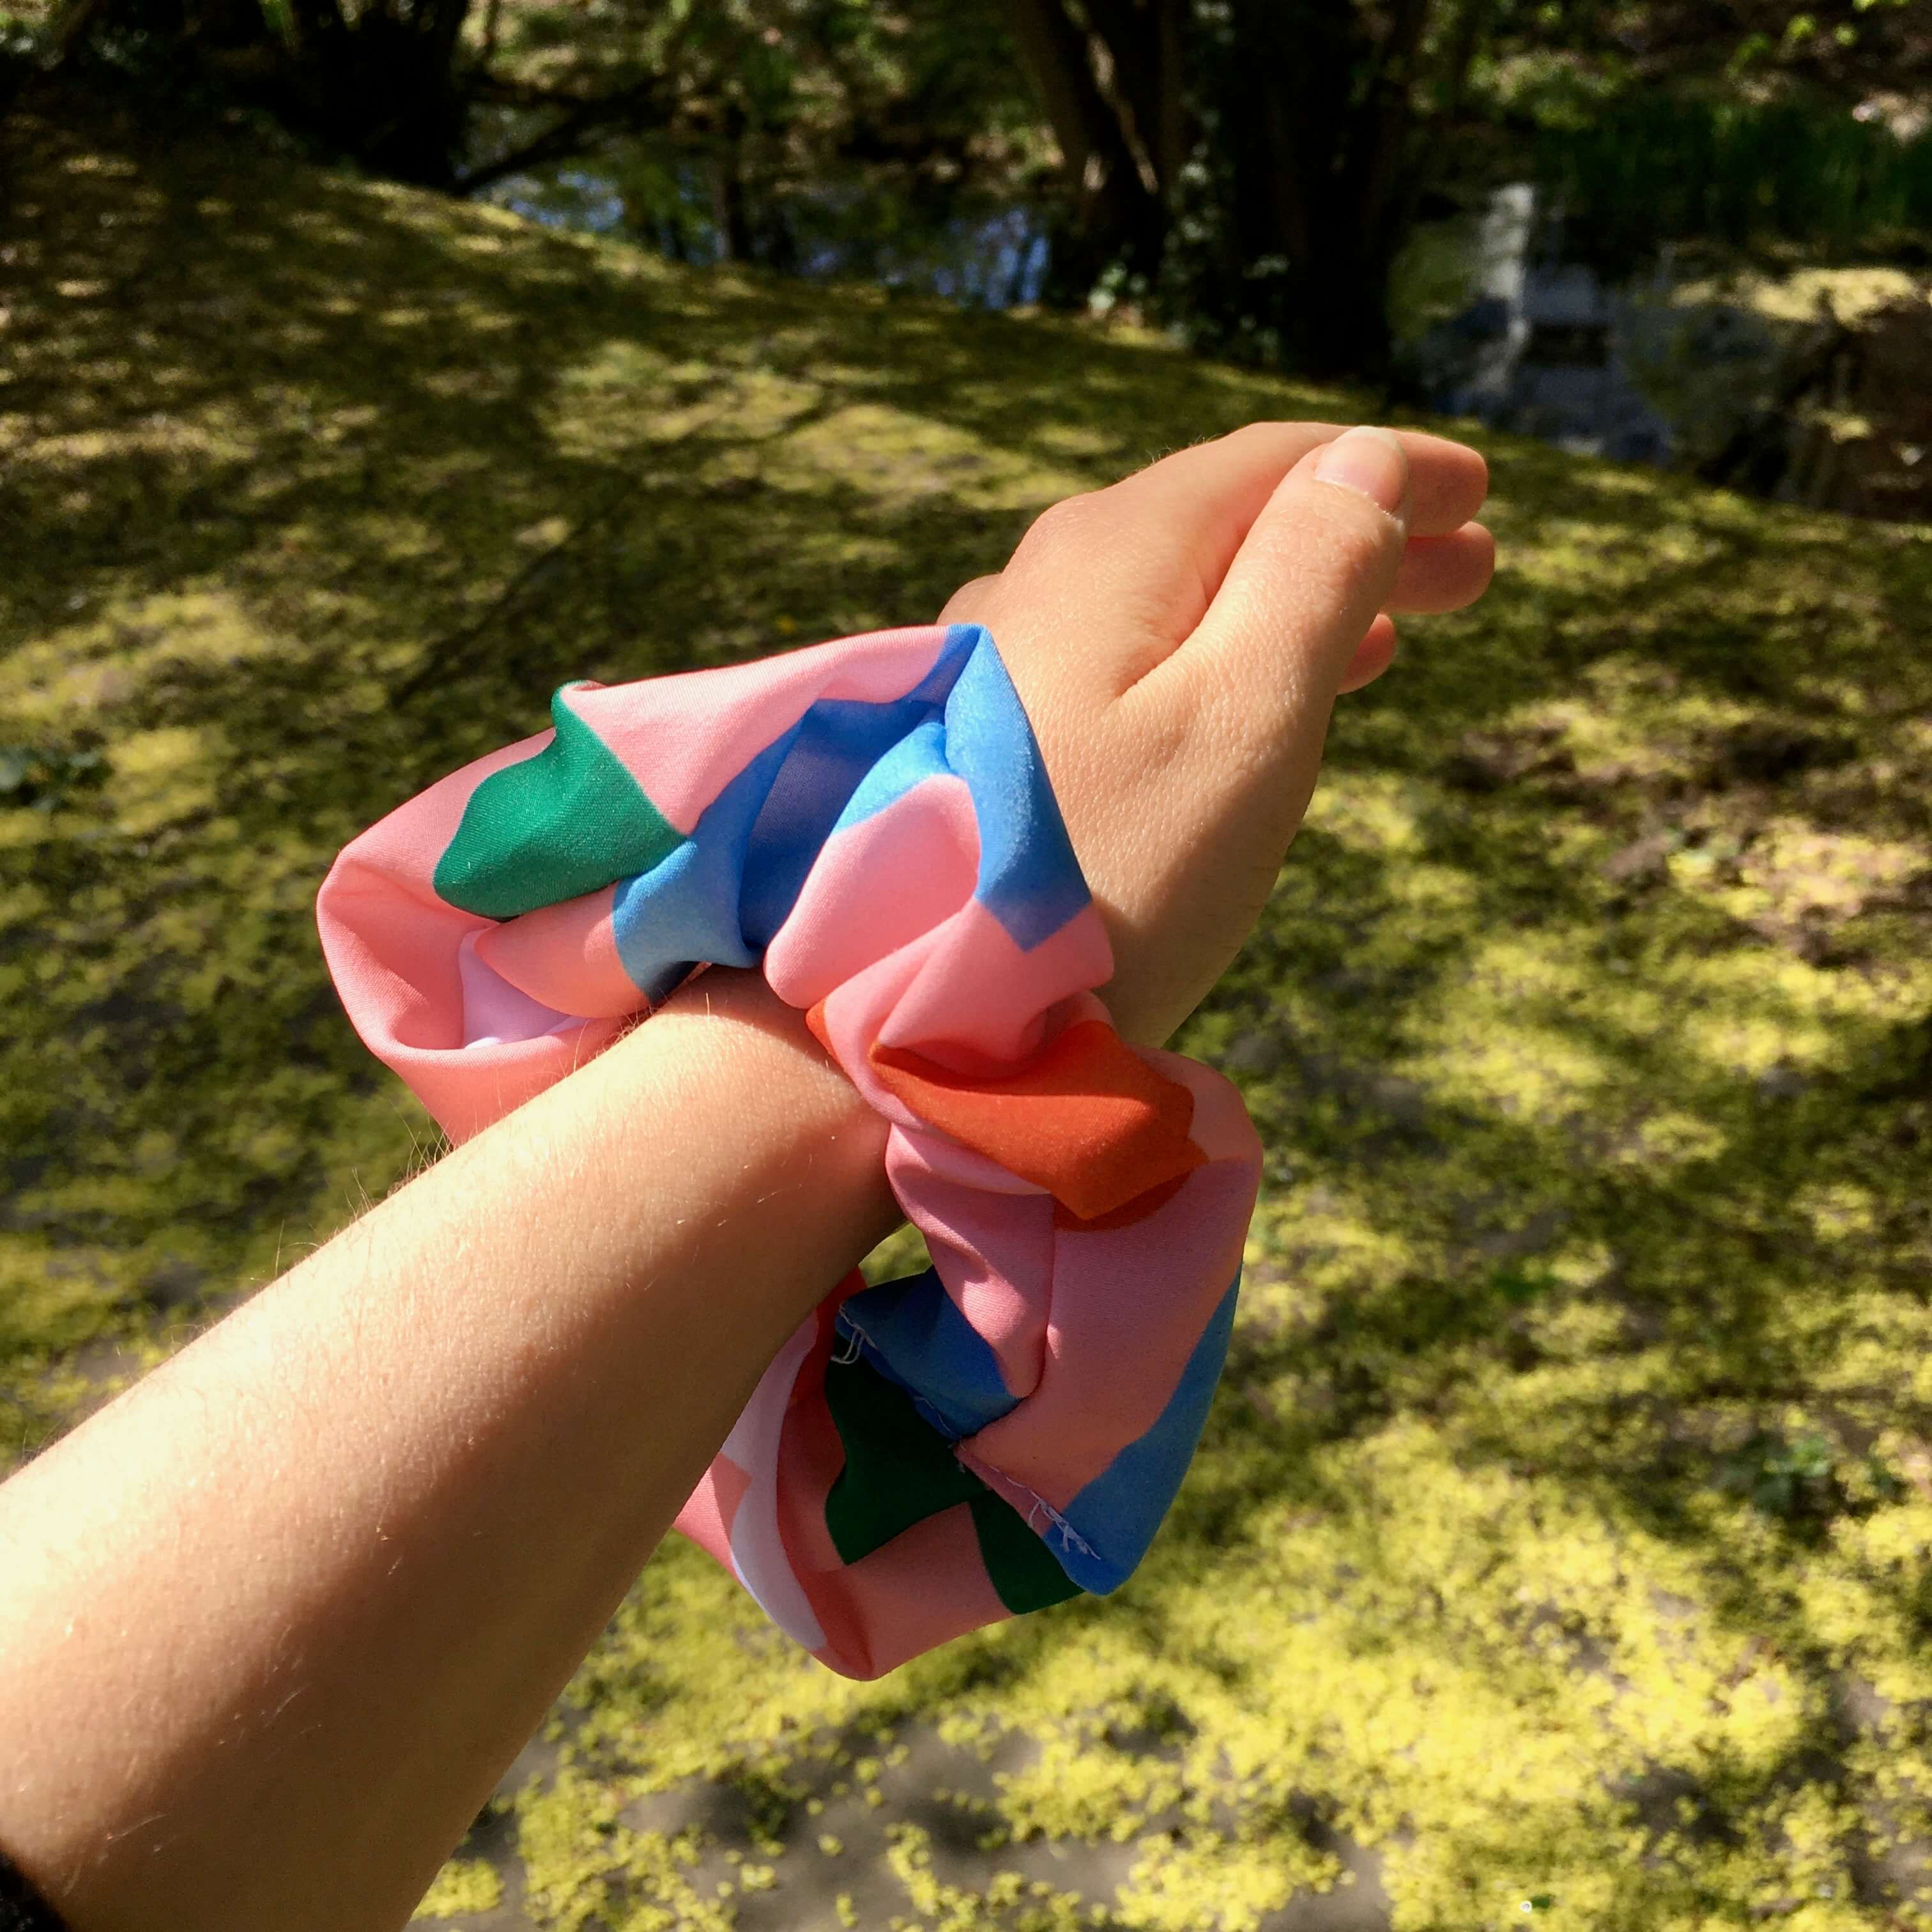 Hair scrunchie used from waste 'Flowerbed' fabric